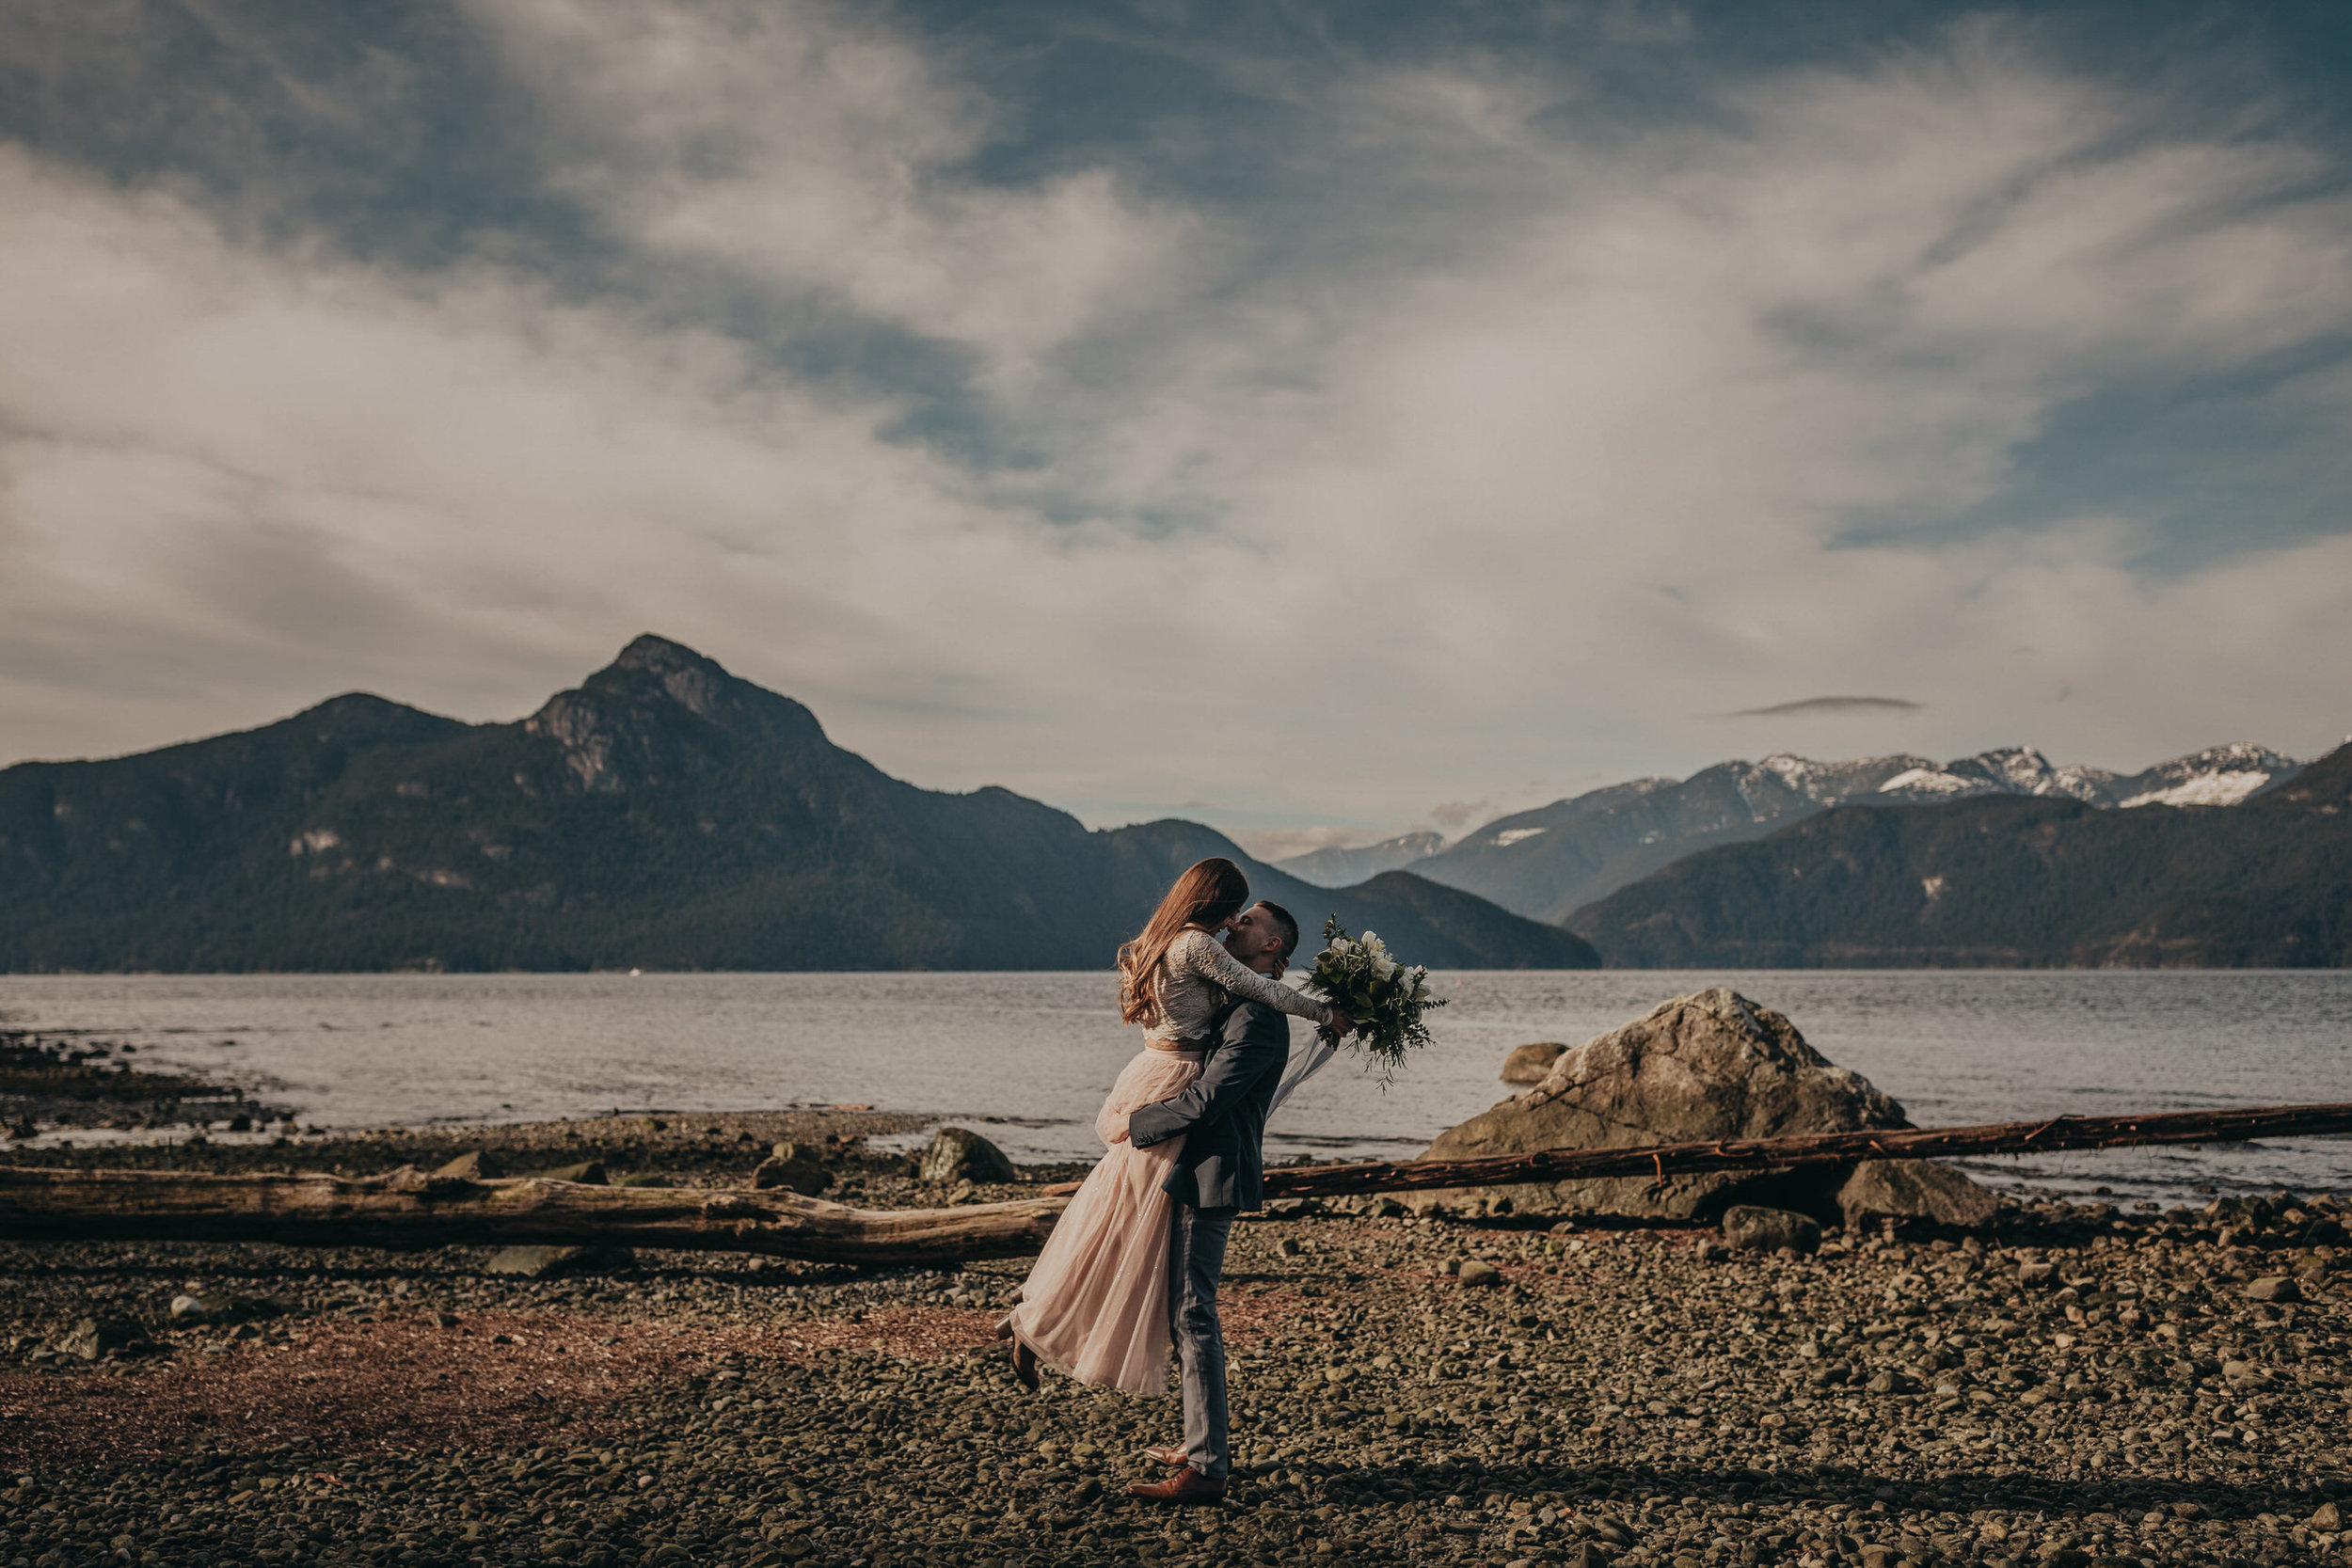 Squamish Engagement Photos - Porteau Cove Engagement Photos - Sunshine Coast Wedding Photographer - Vancouver Wedding Photographer - Squamish Wedding Photographer266.JPG